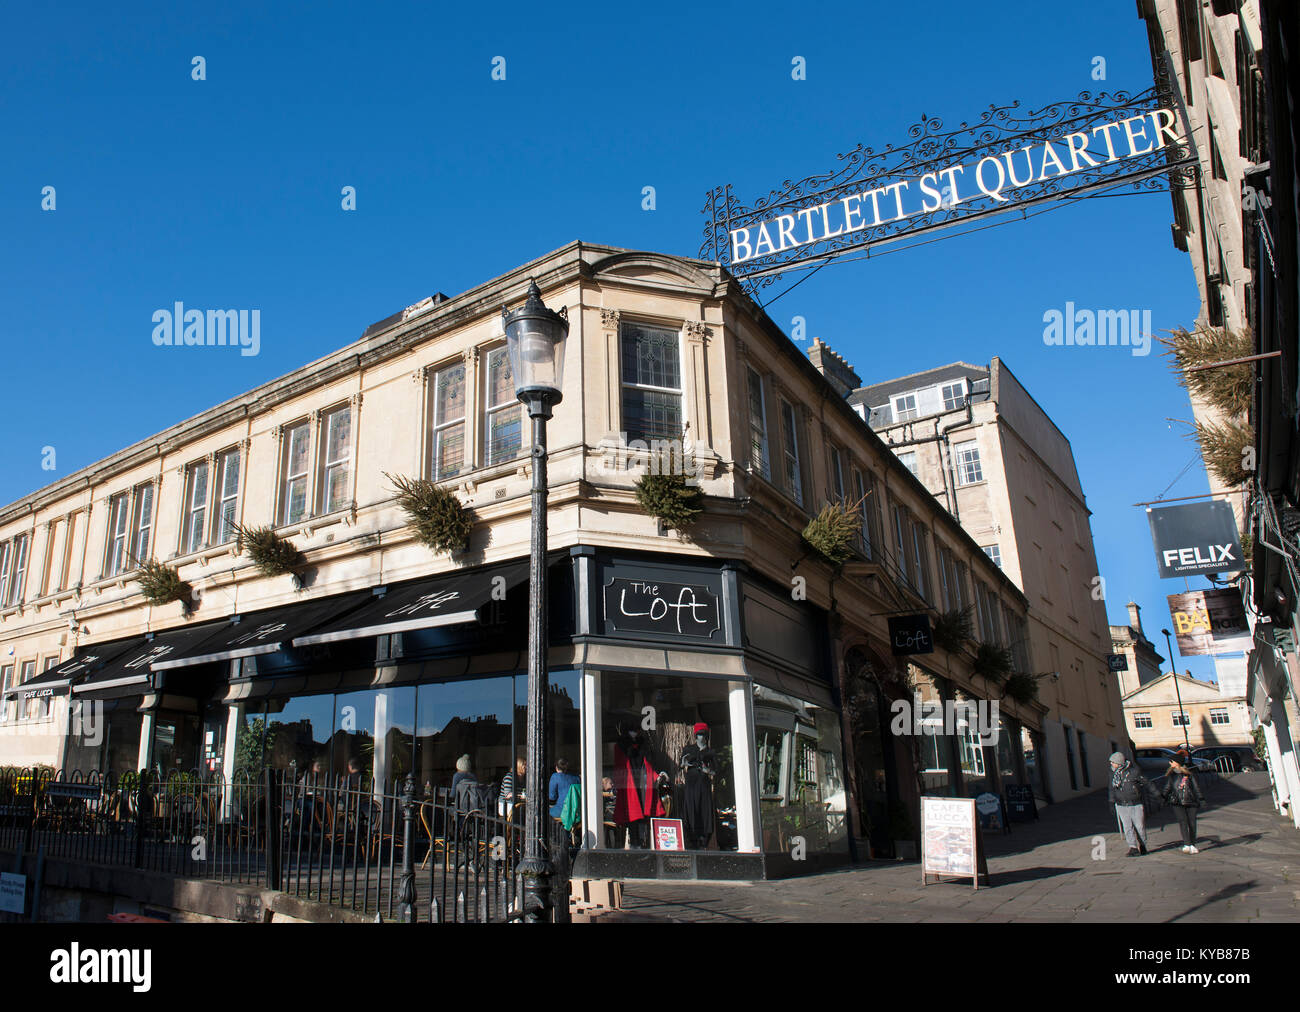 Bartlett St Quarter Shopping area, Bath, Somerset, England, UK - Stock Image